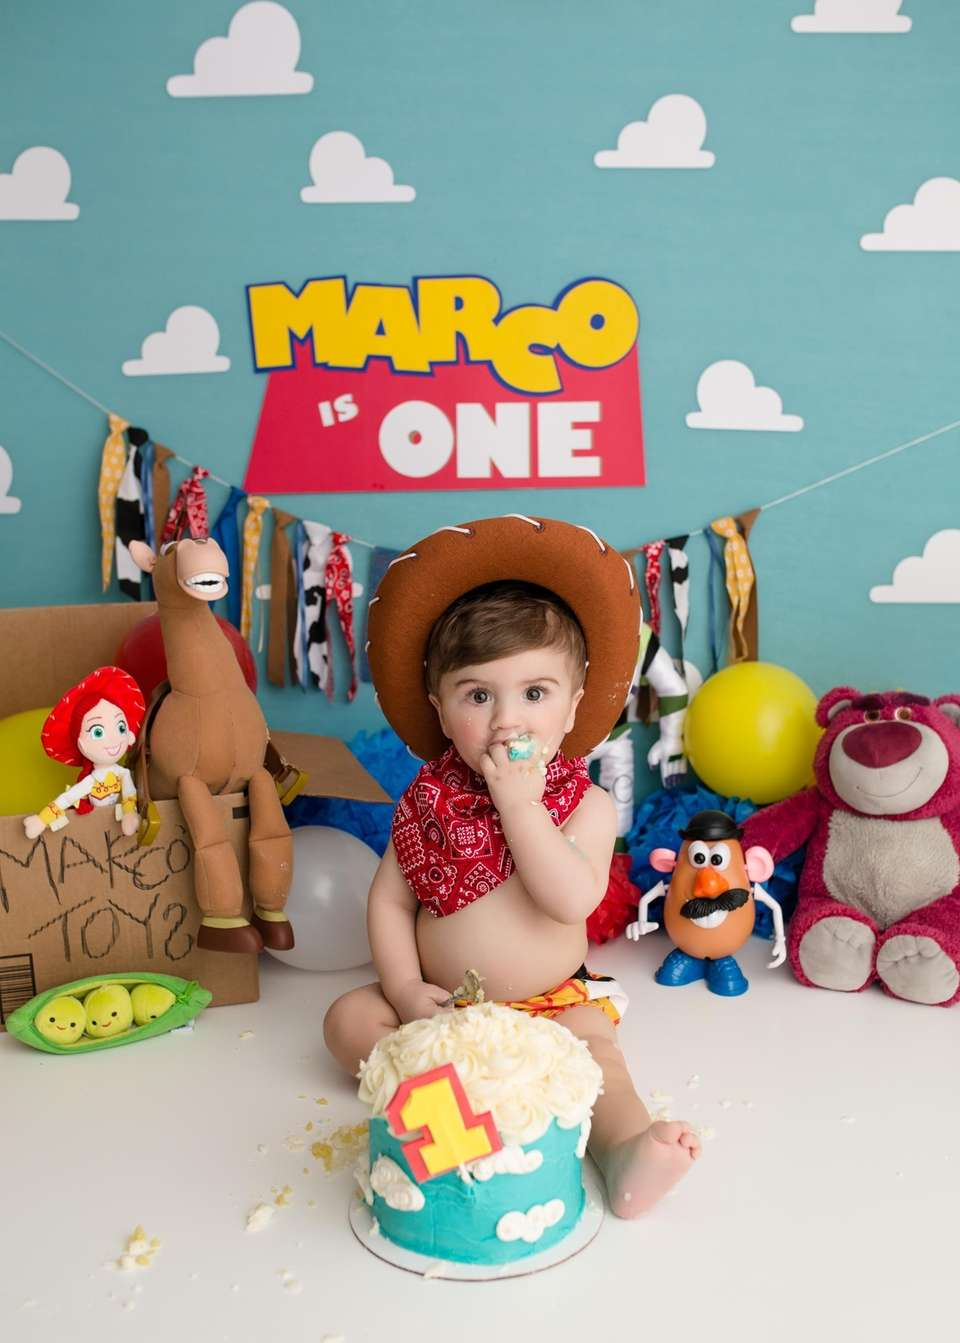 Marco turns 1!